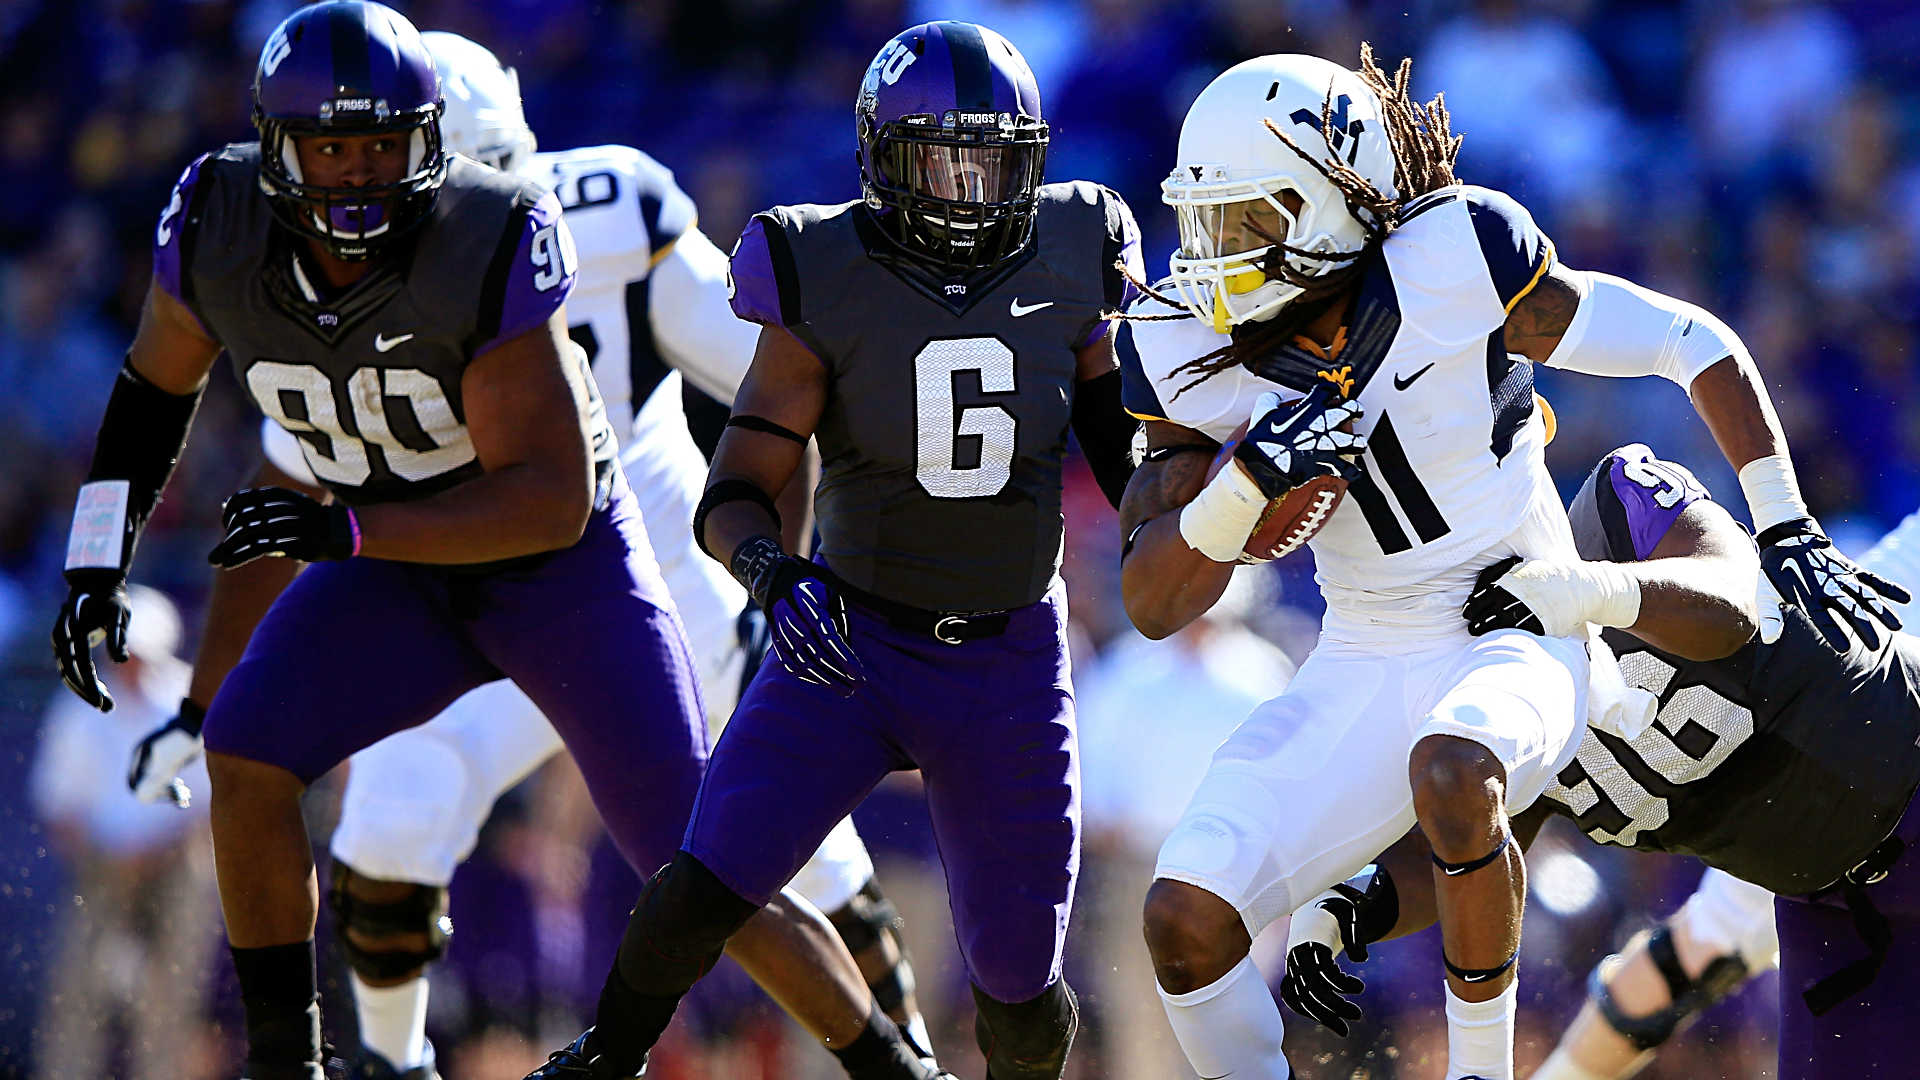 Expects lots of points, yards between TCU, West Virginia